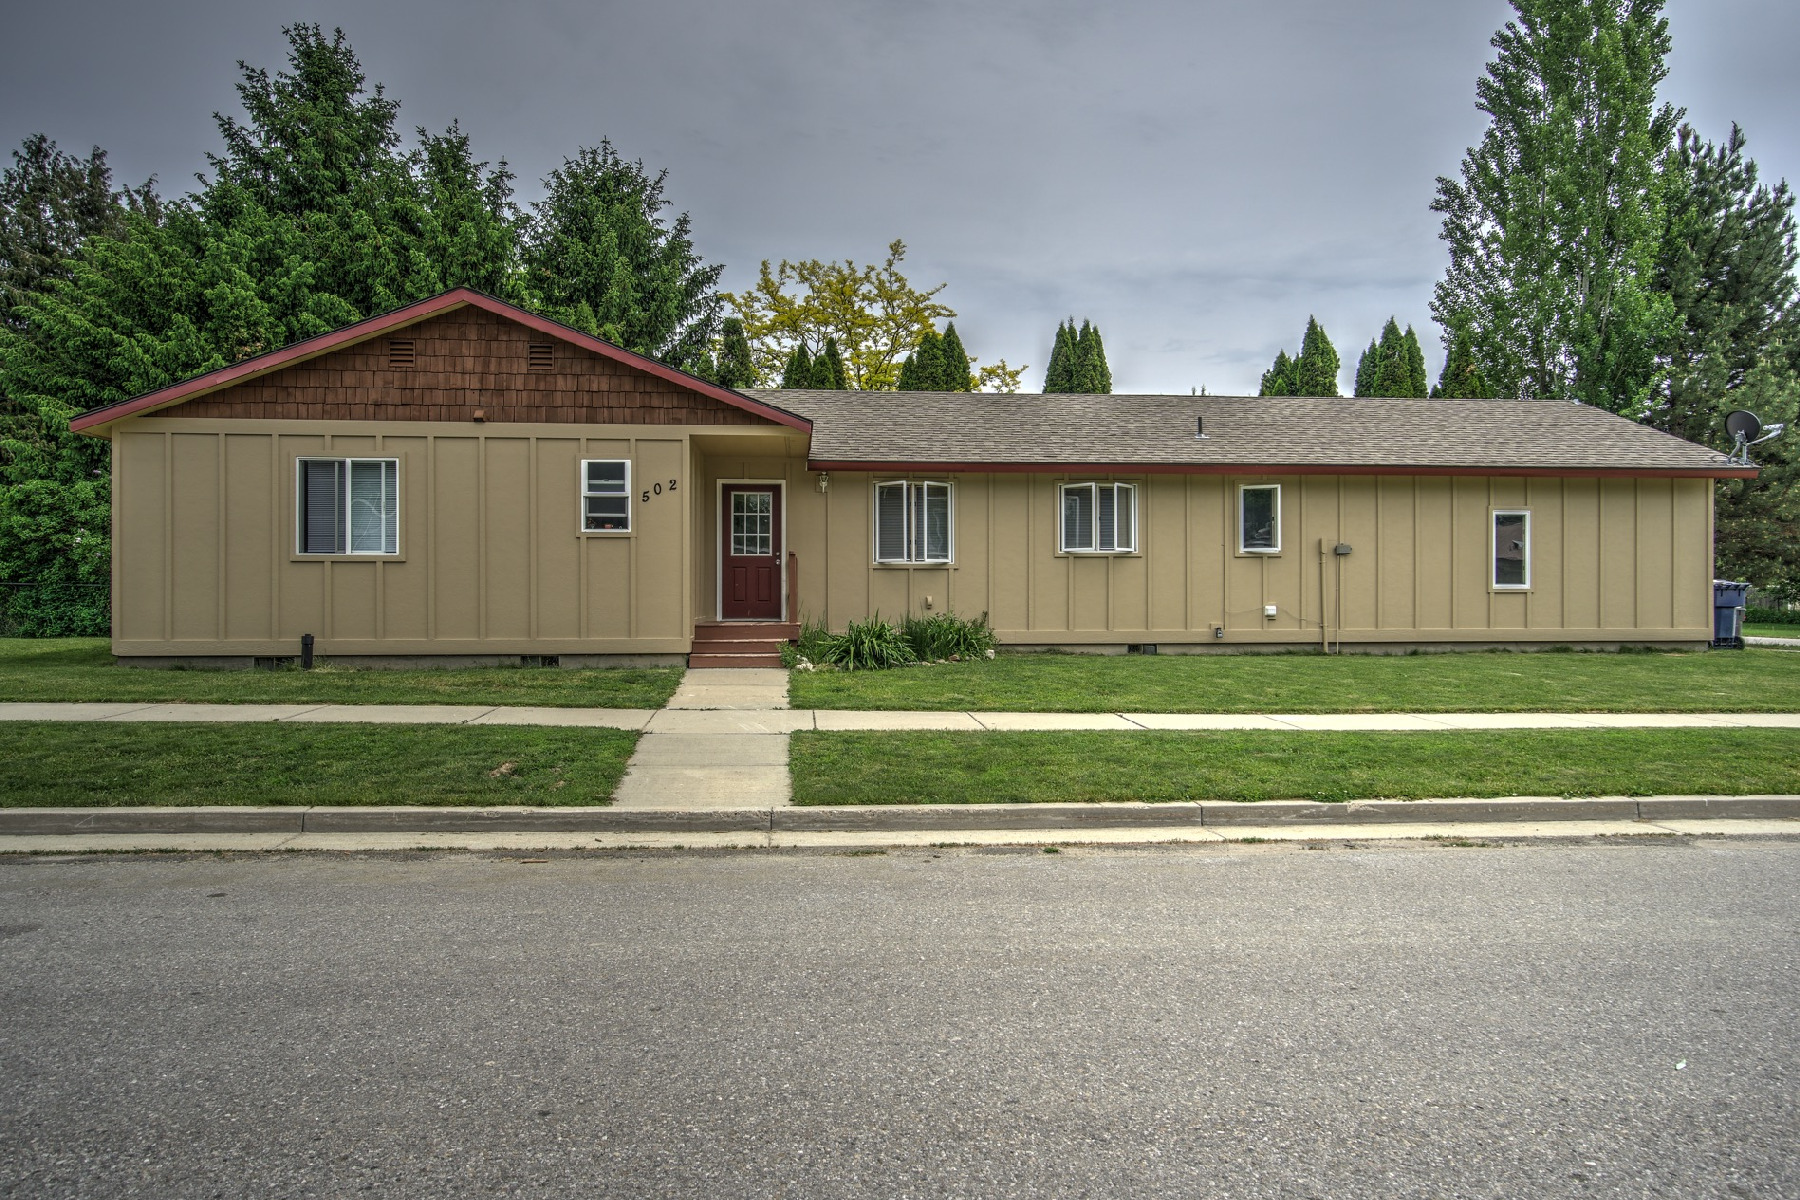 Single Family Home for Sale at Fantastic Find in Sandpoint Idaho 502 N Jefferson Ave Sandpoint, Idaho, 83864 United States